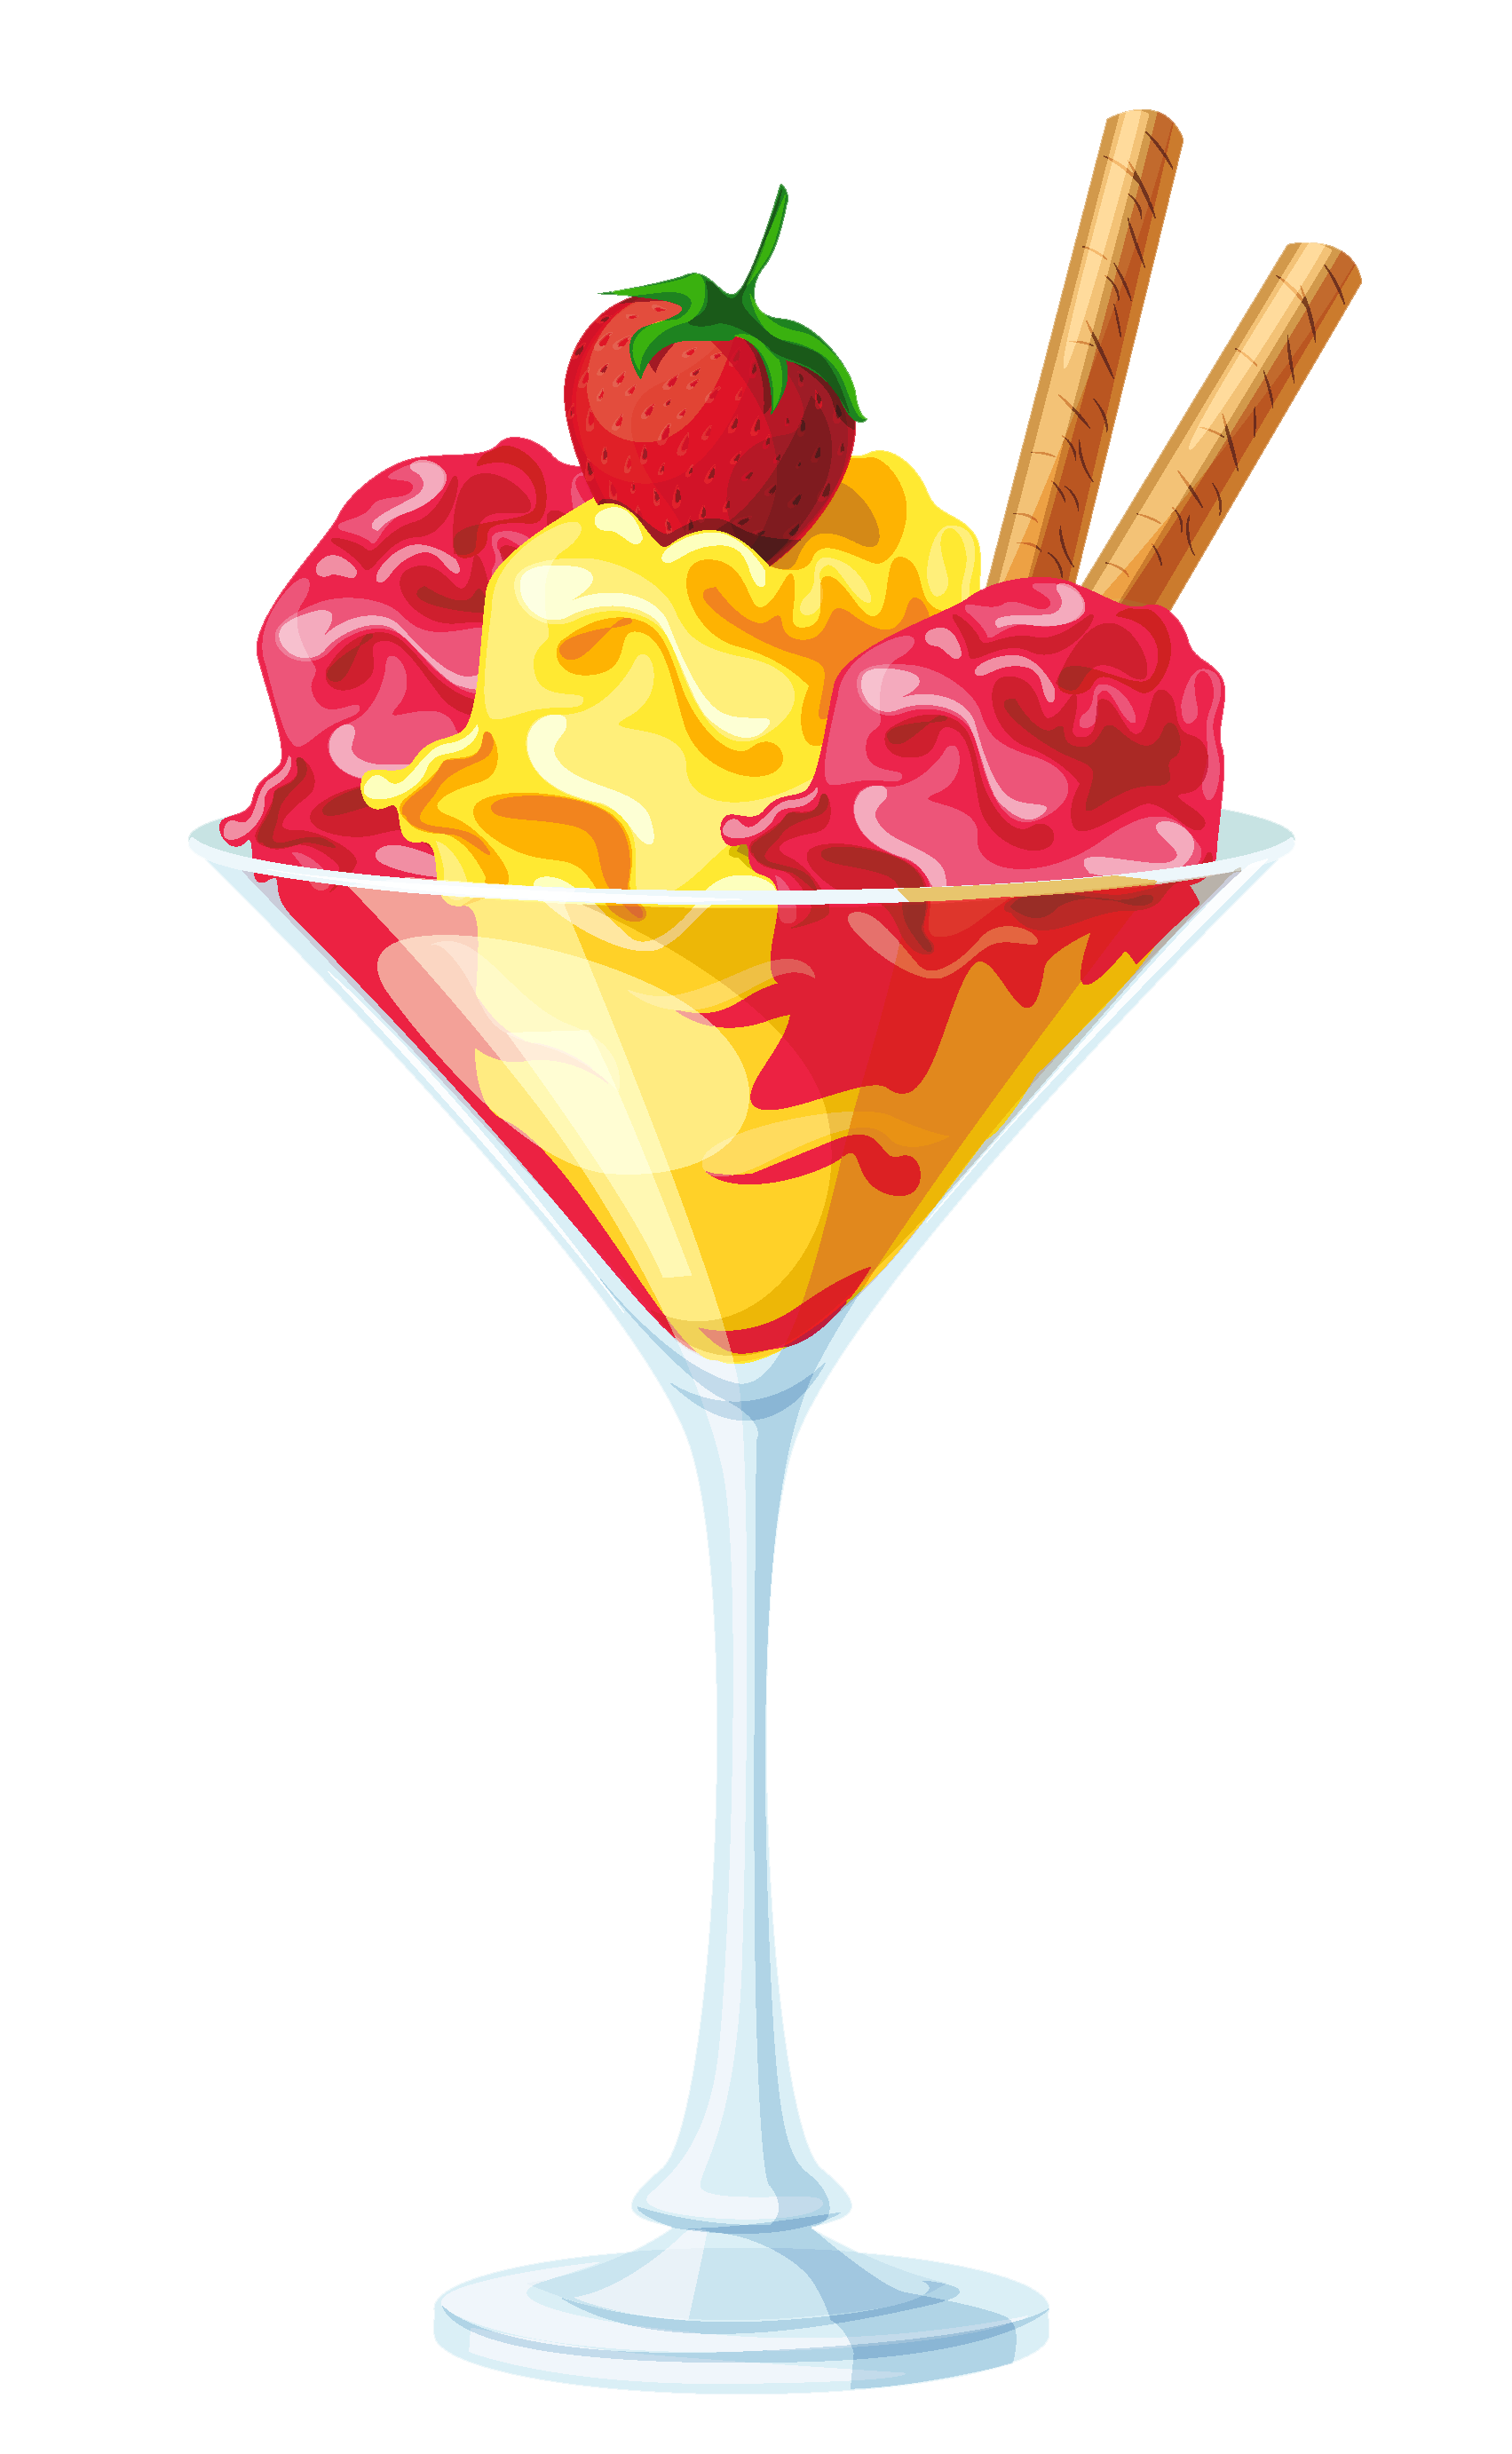 1703x2764 Yellow Red Ice Cream Sundae Transparent Pictureu200b Gallery